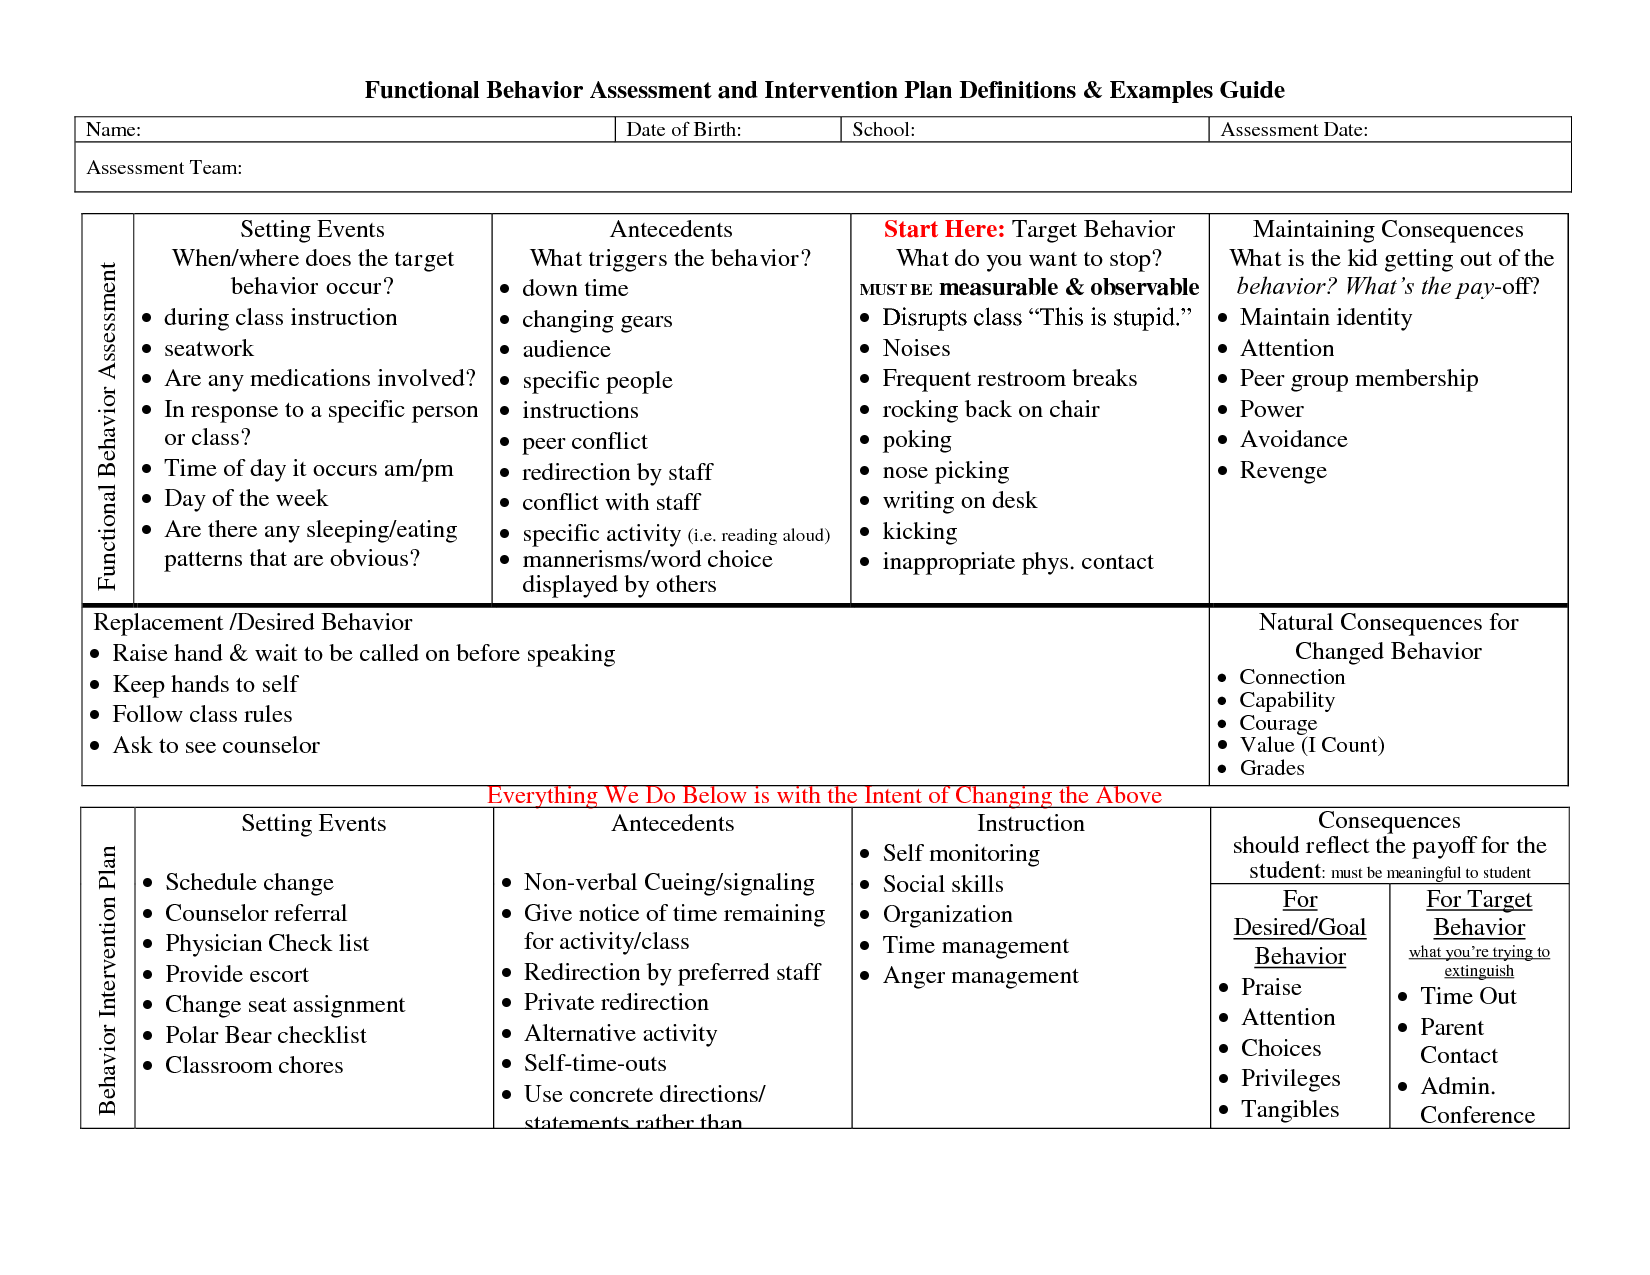 Functional behavior assessment example google search for Functional assessment observation form template